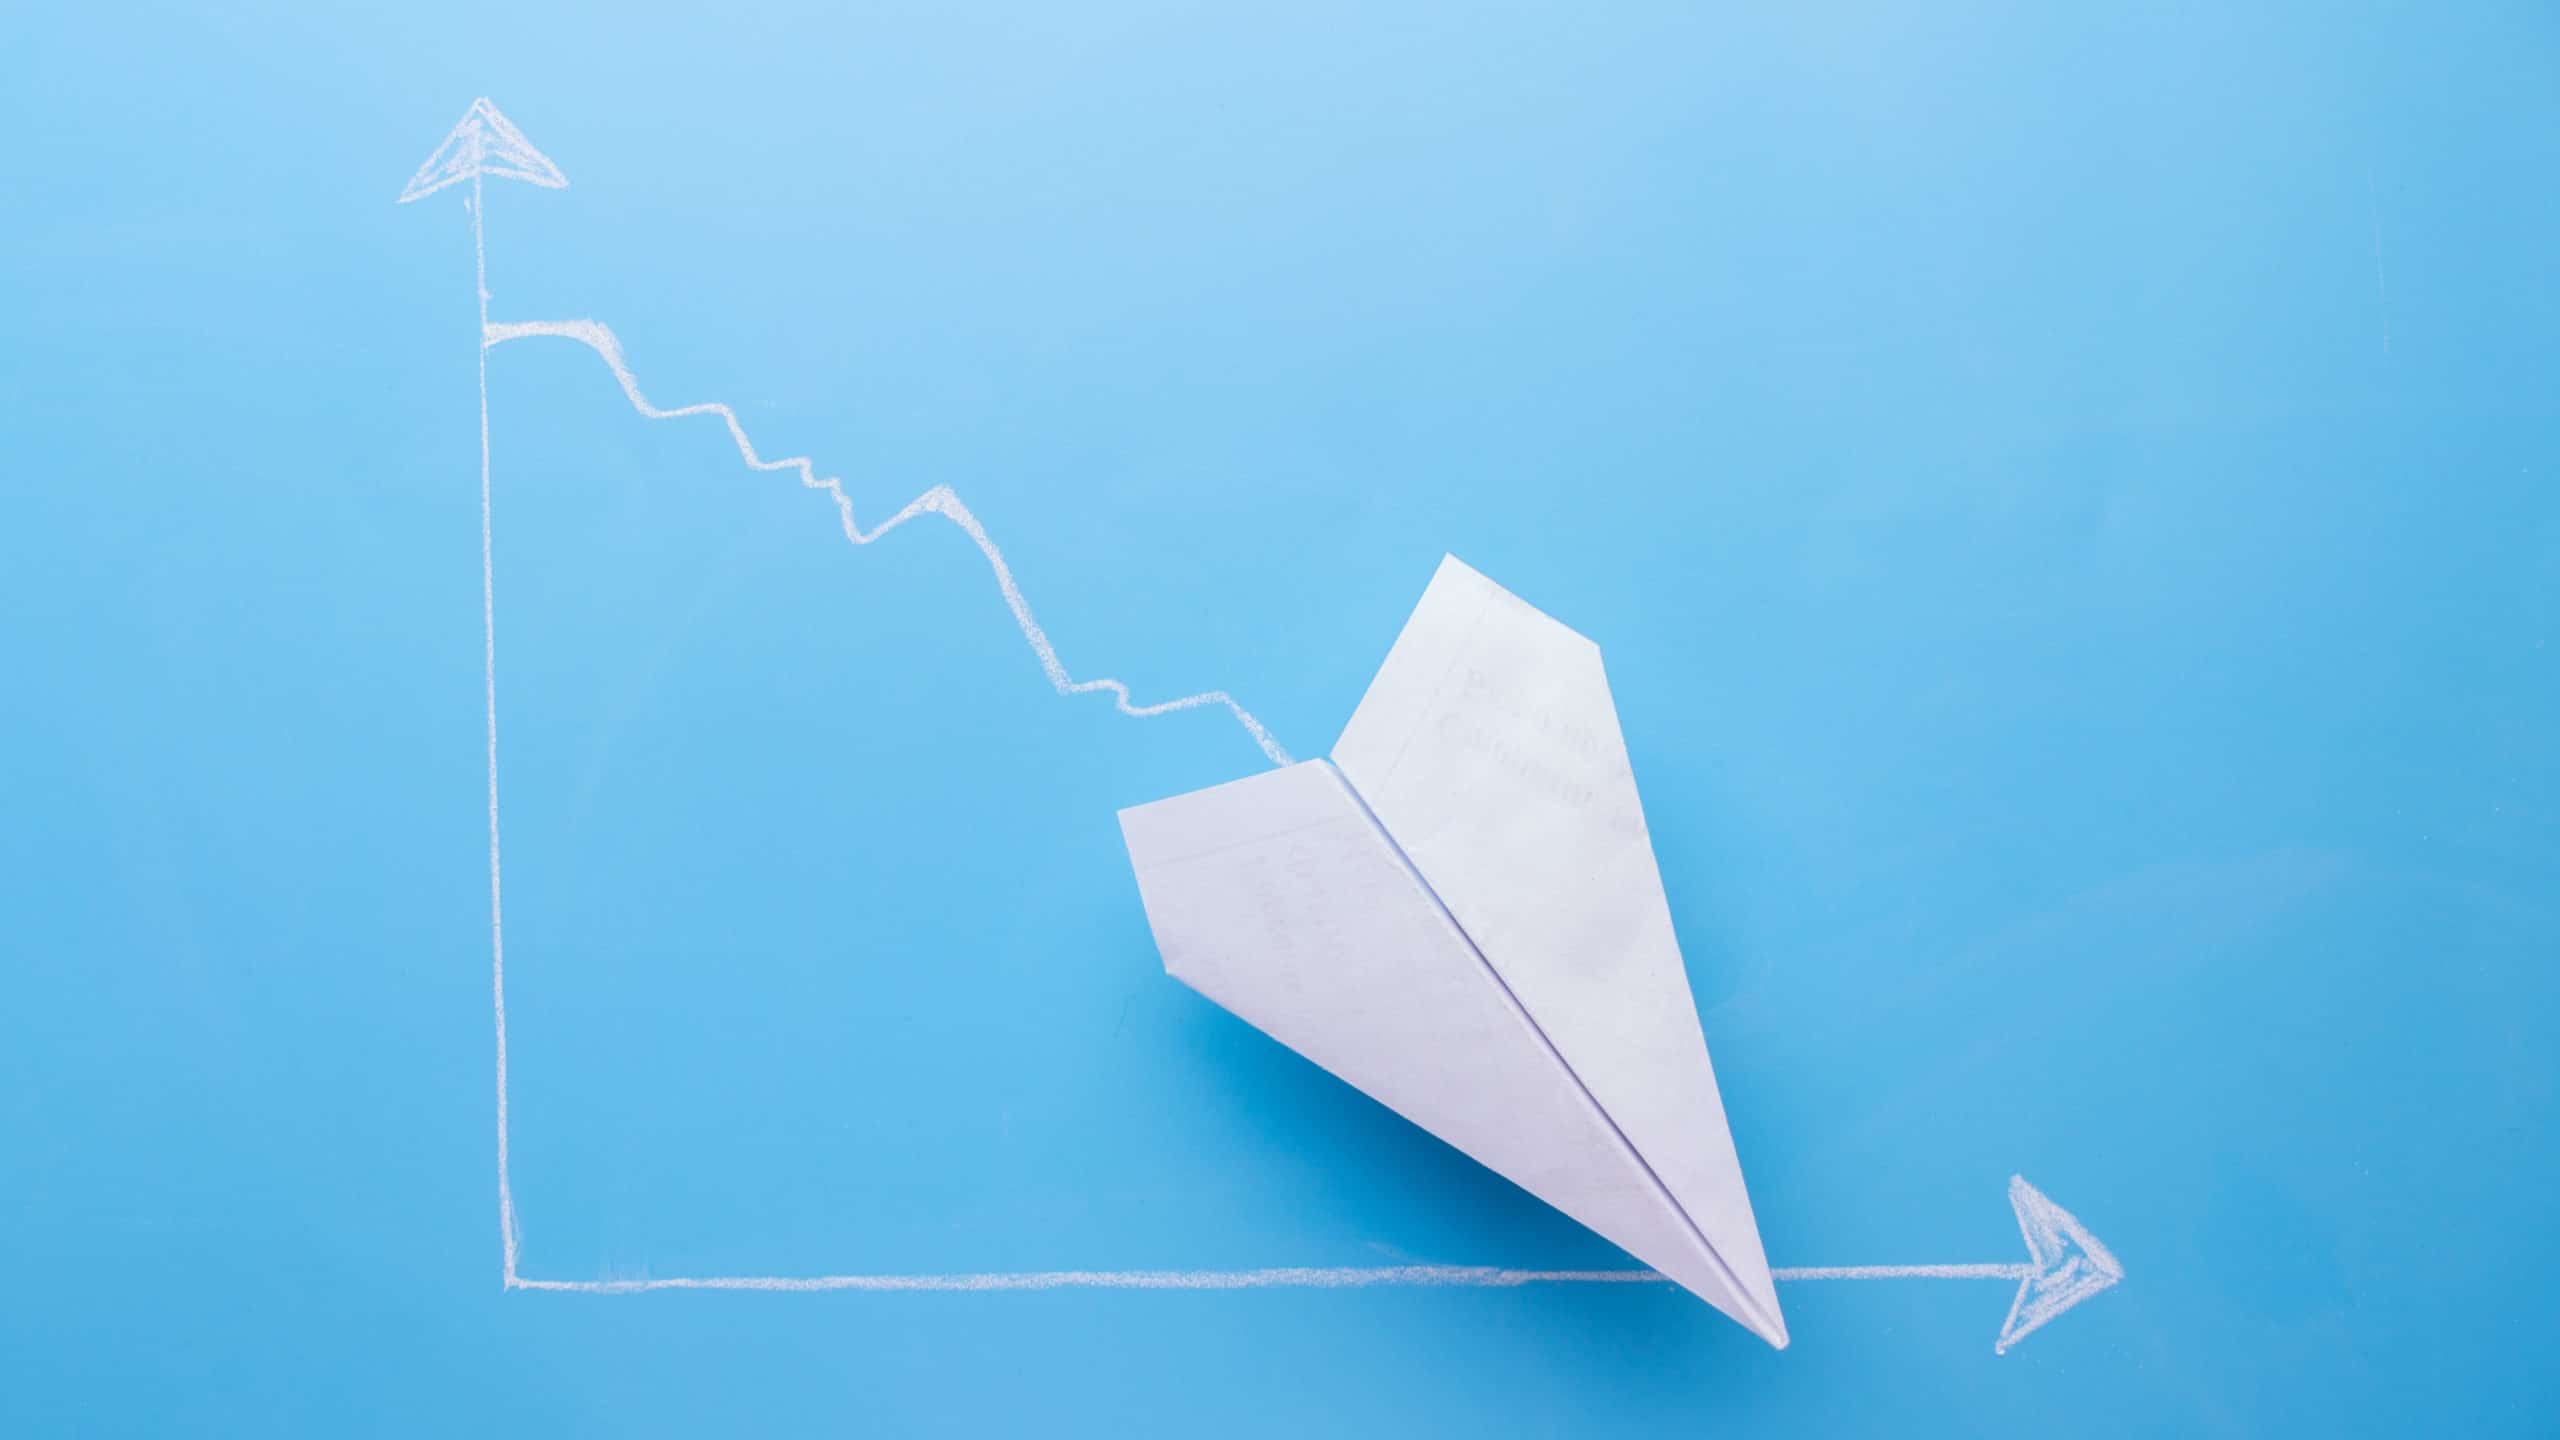 asx share price falling represented by graph of paper plane trending down